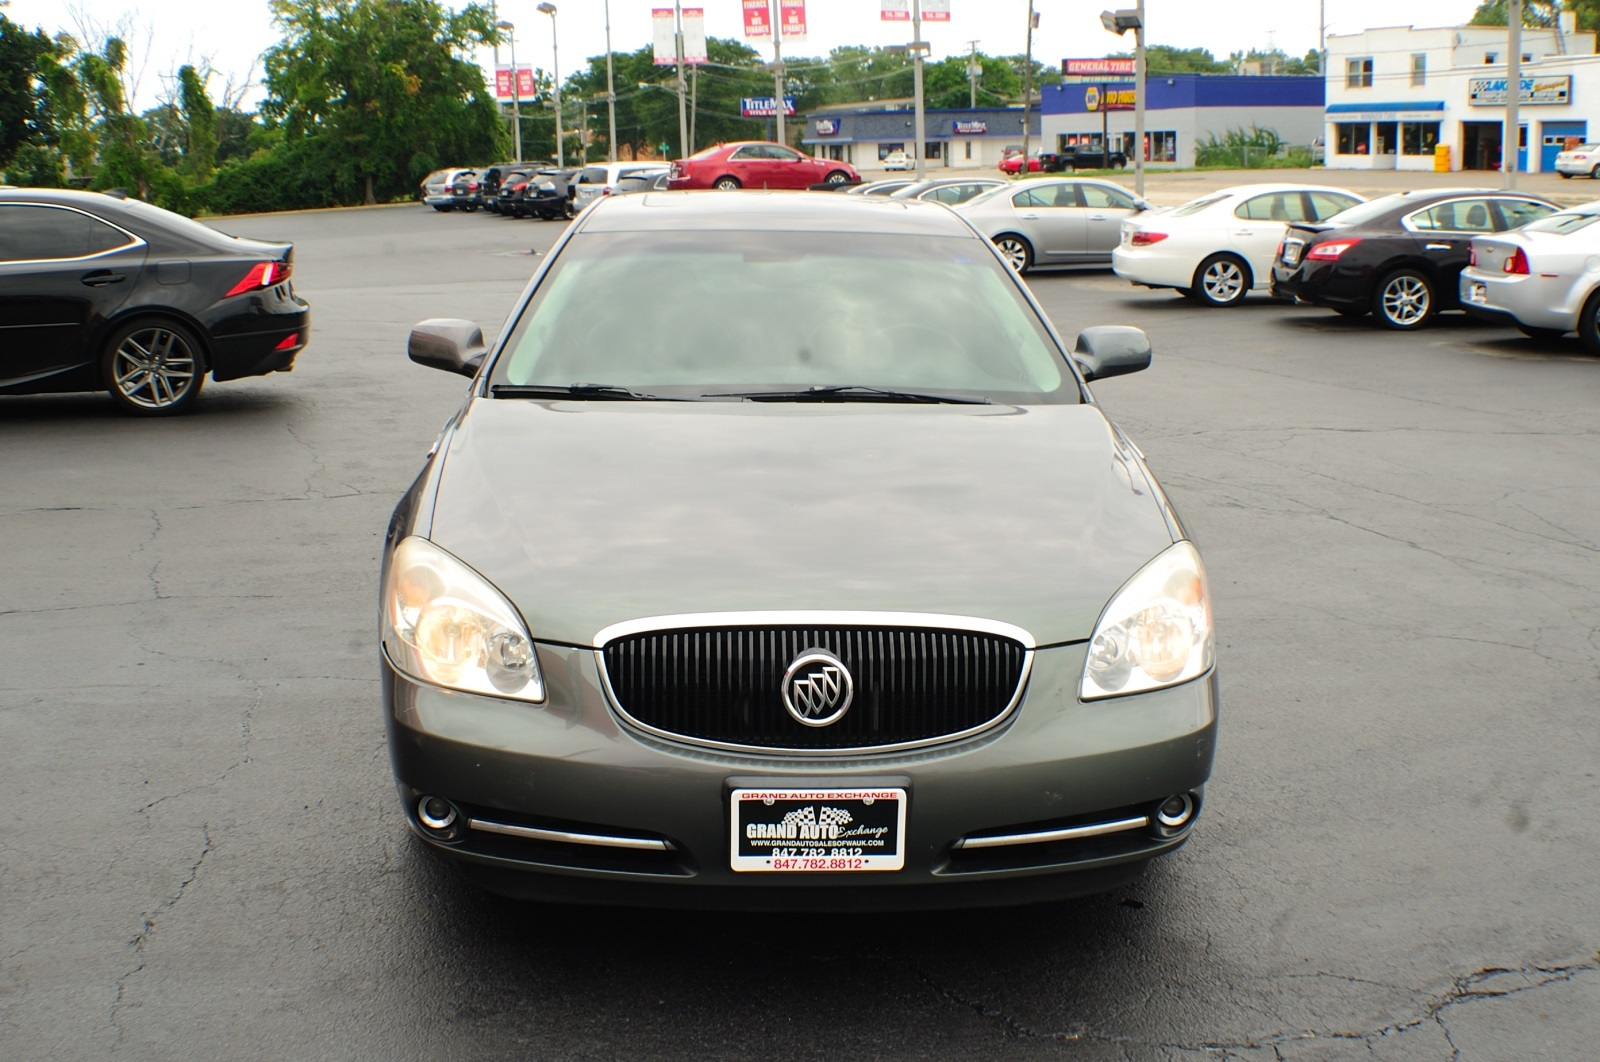 2006 Buick Lucerne CXS Green Sedan Sale Gurnee Kenosha Mchenry Chicago Illinois